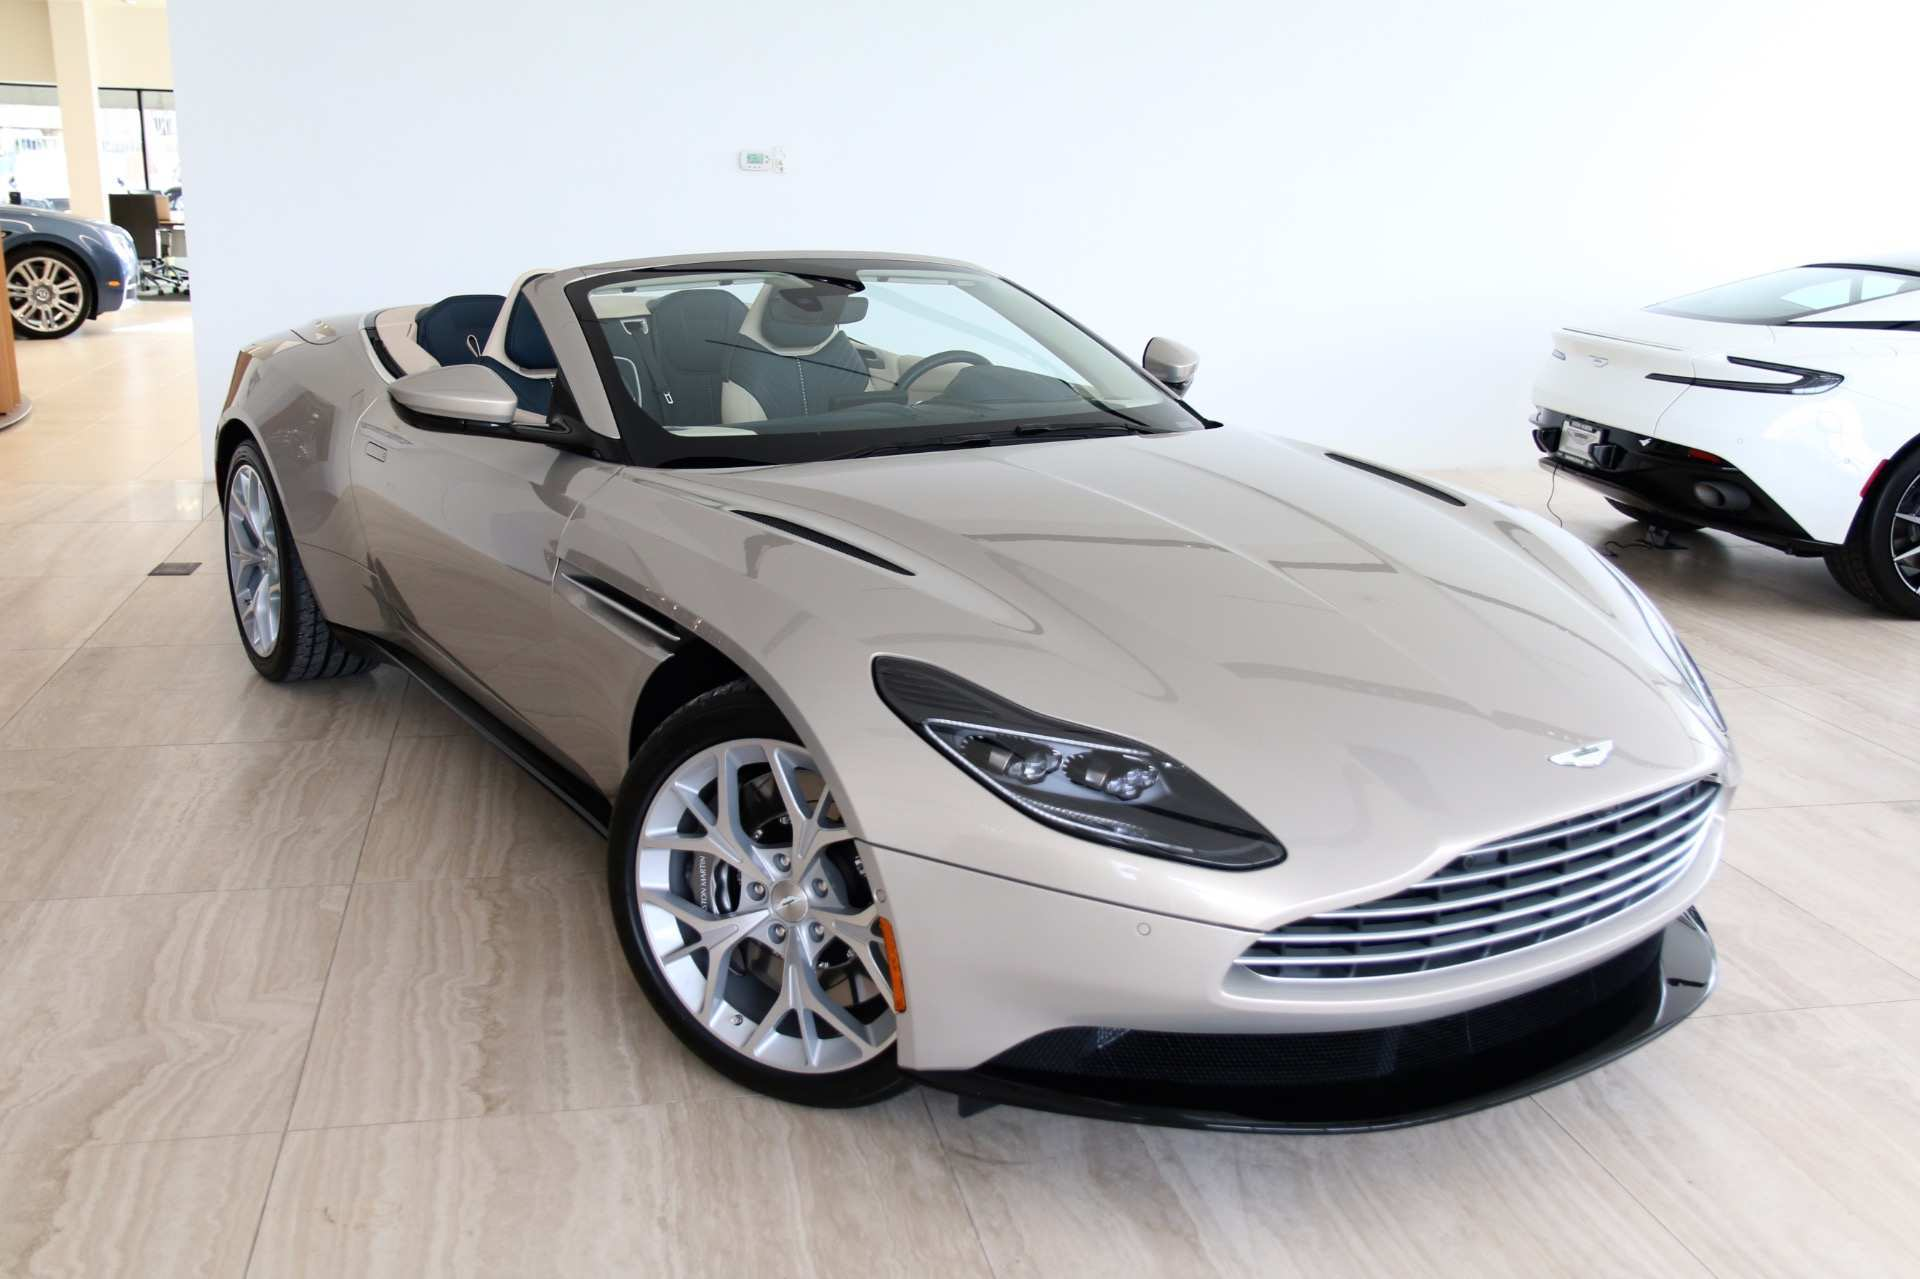 99 Gallery of 2019 Aston Martin Db11 Volante Release with 2019 Aston Martin Db11 Volante